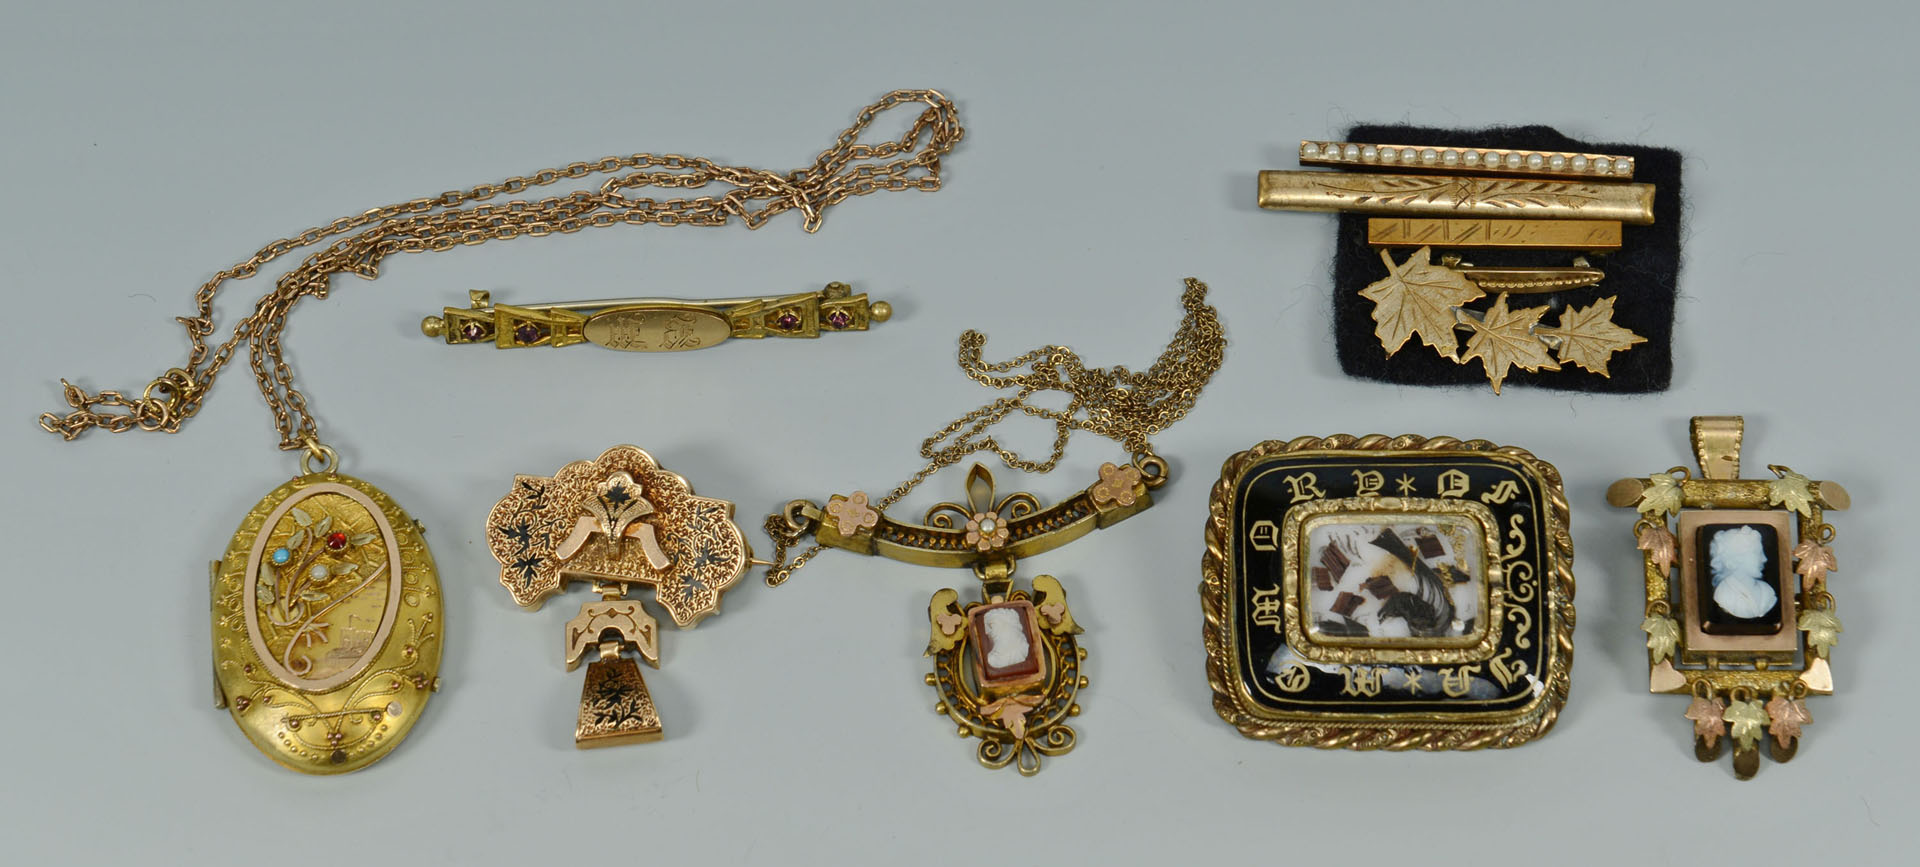 11 pcs Victorian & Mourning Jewelry inc. cameos